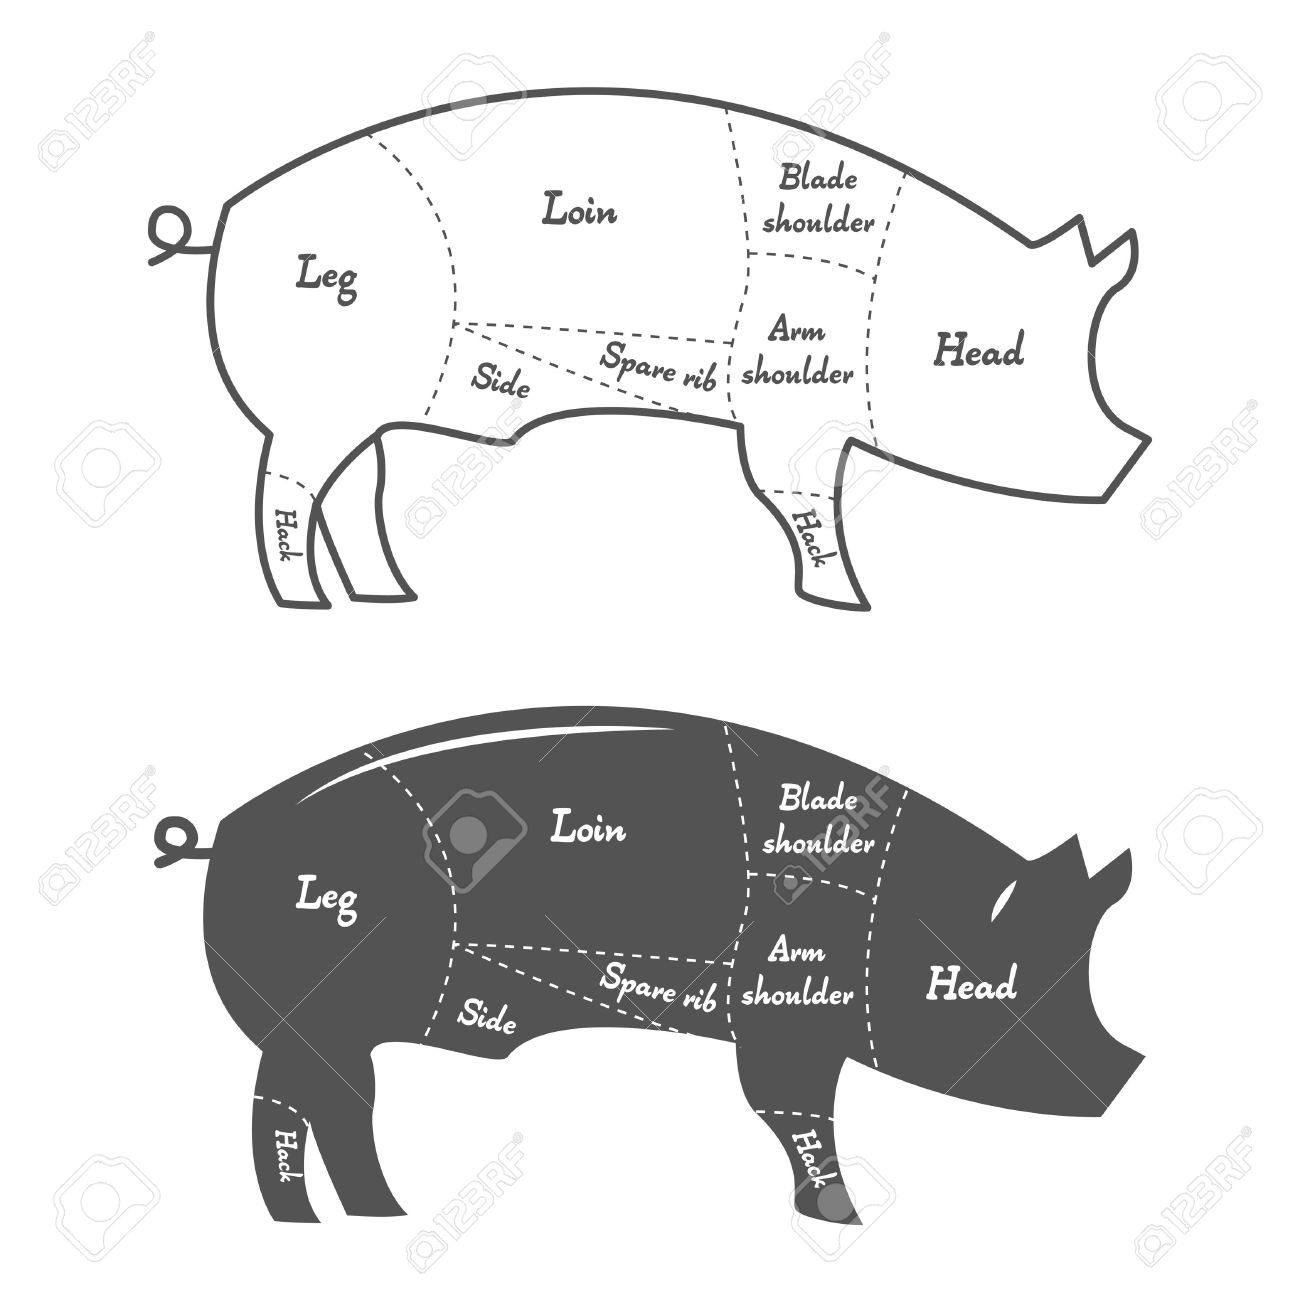 128 Pork Shoulder Cliparts, Stock Vector And Royalty Free Pork ...